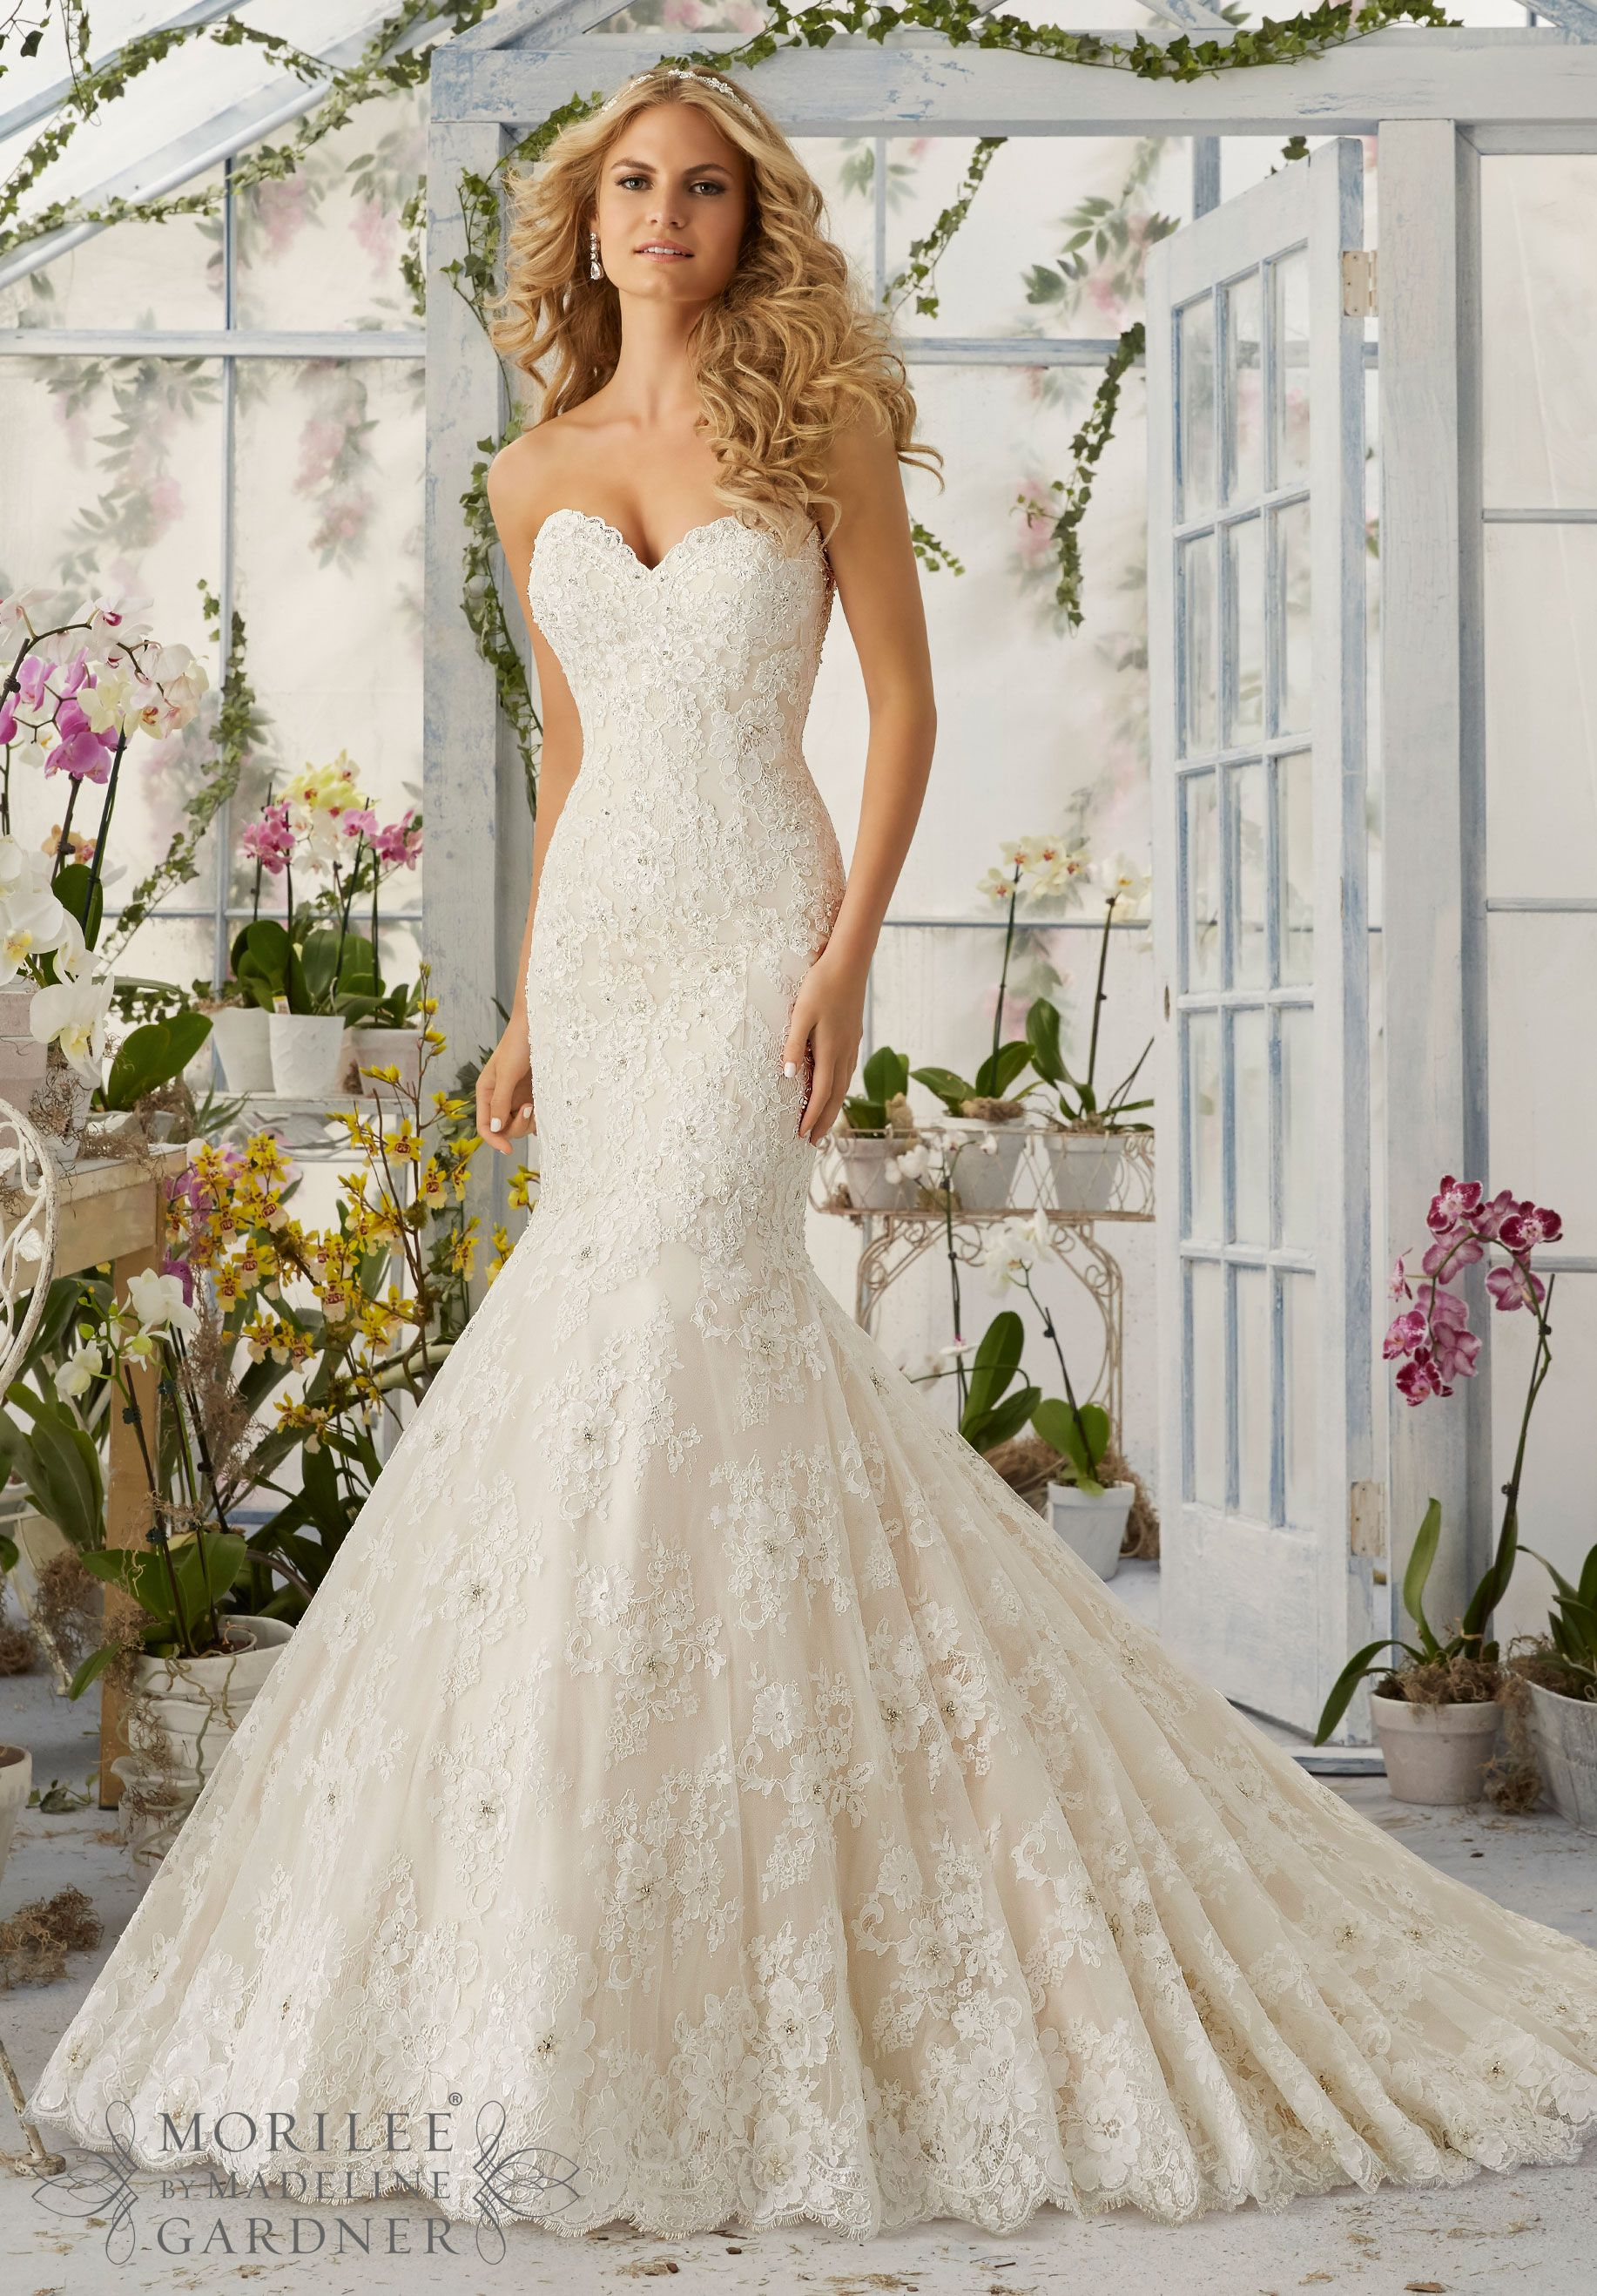 wedding dresses bridal gowns wedding gowns by designer morilee dress style 2820